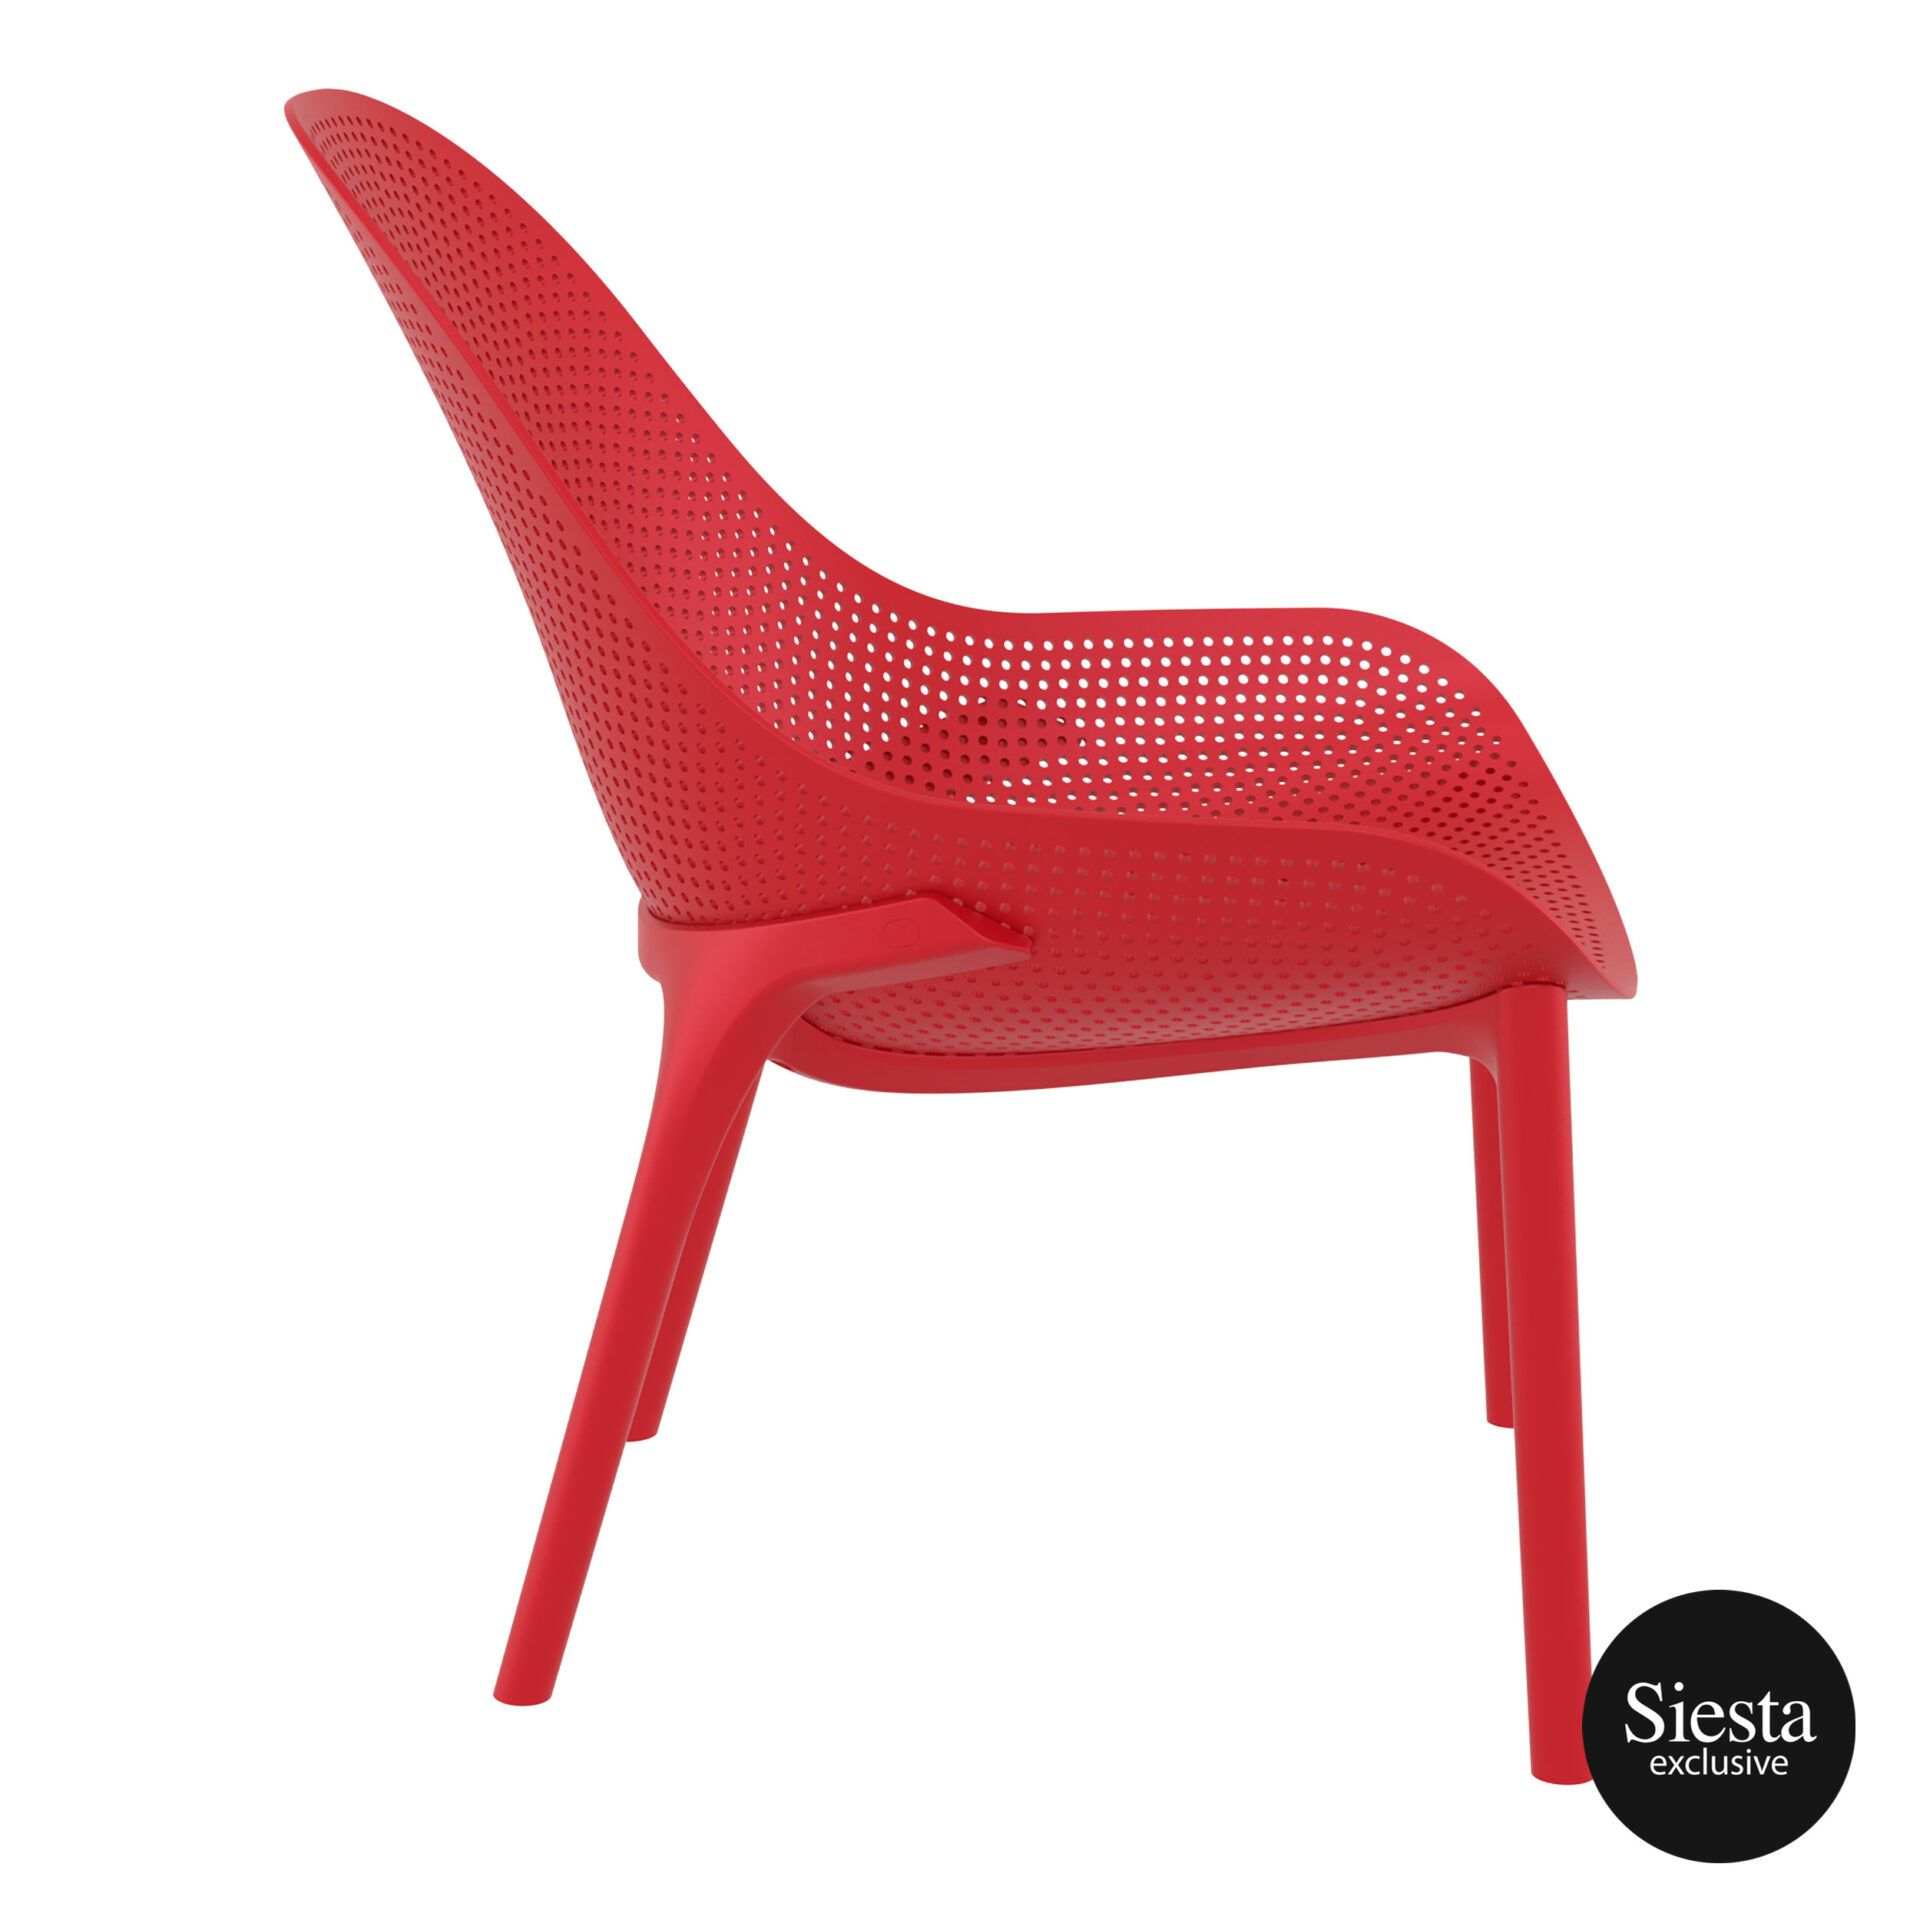 outdoor seating polypropylene sky lounge red side 1